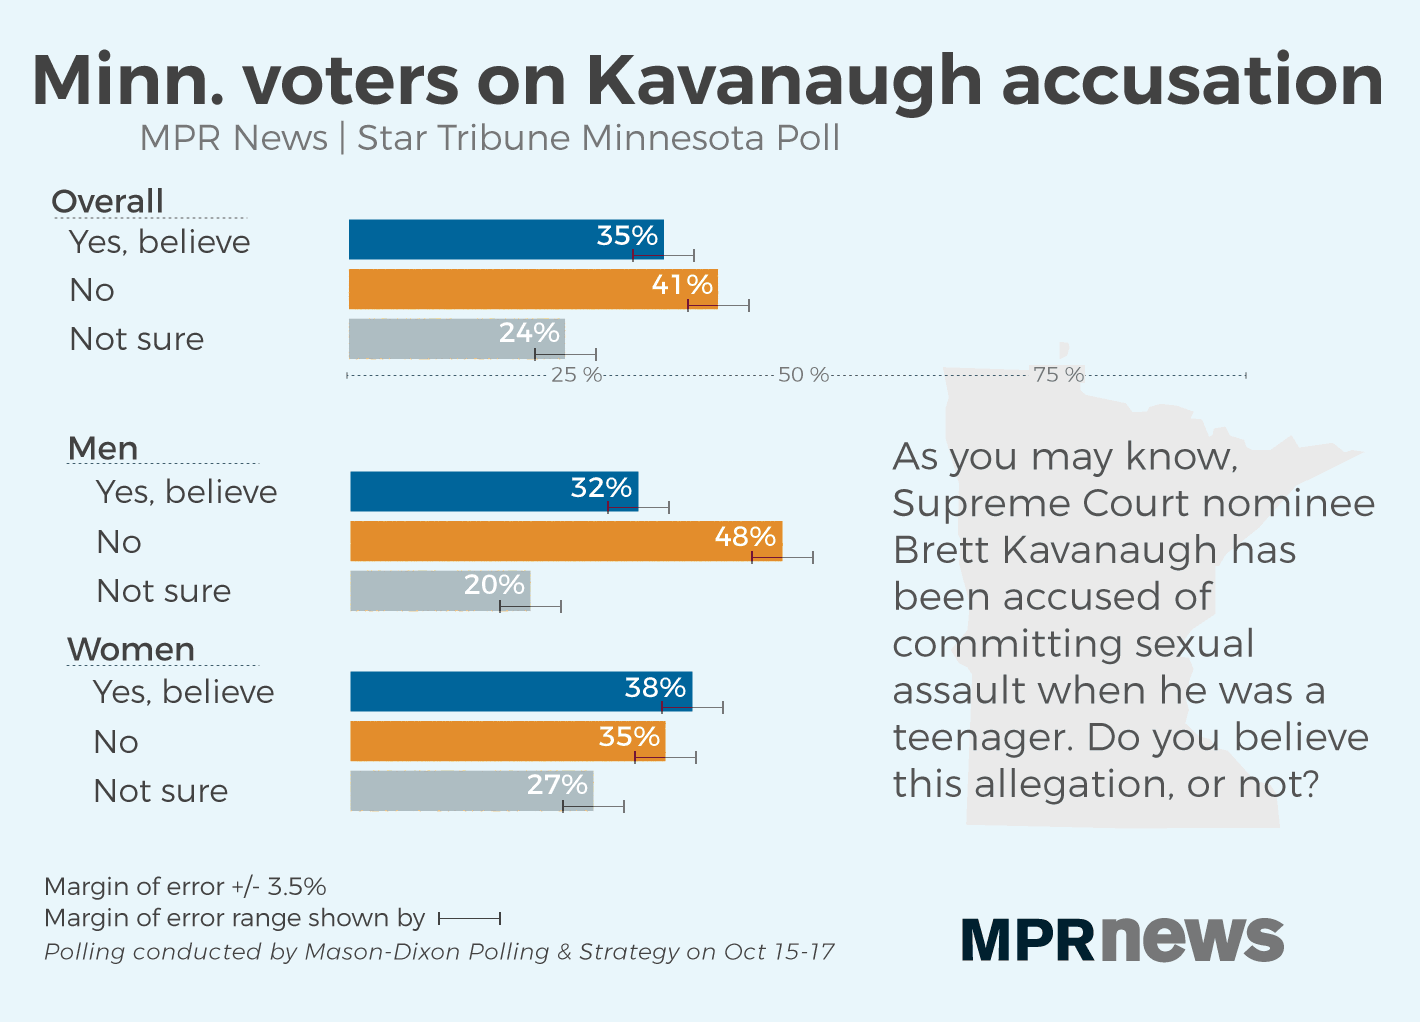 The belief in the accusation against Kavanaugh splits along gender lines.